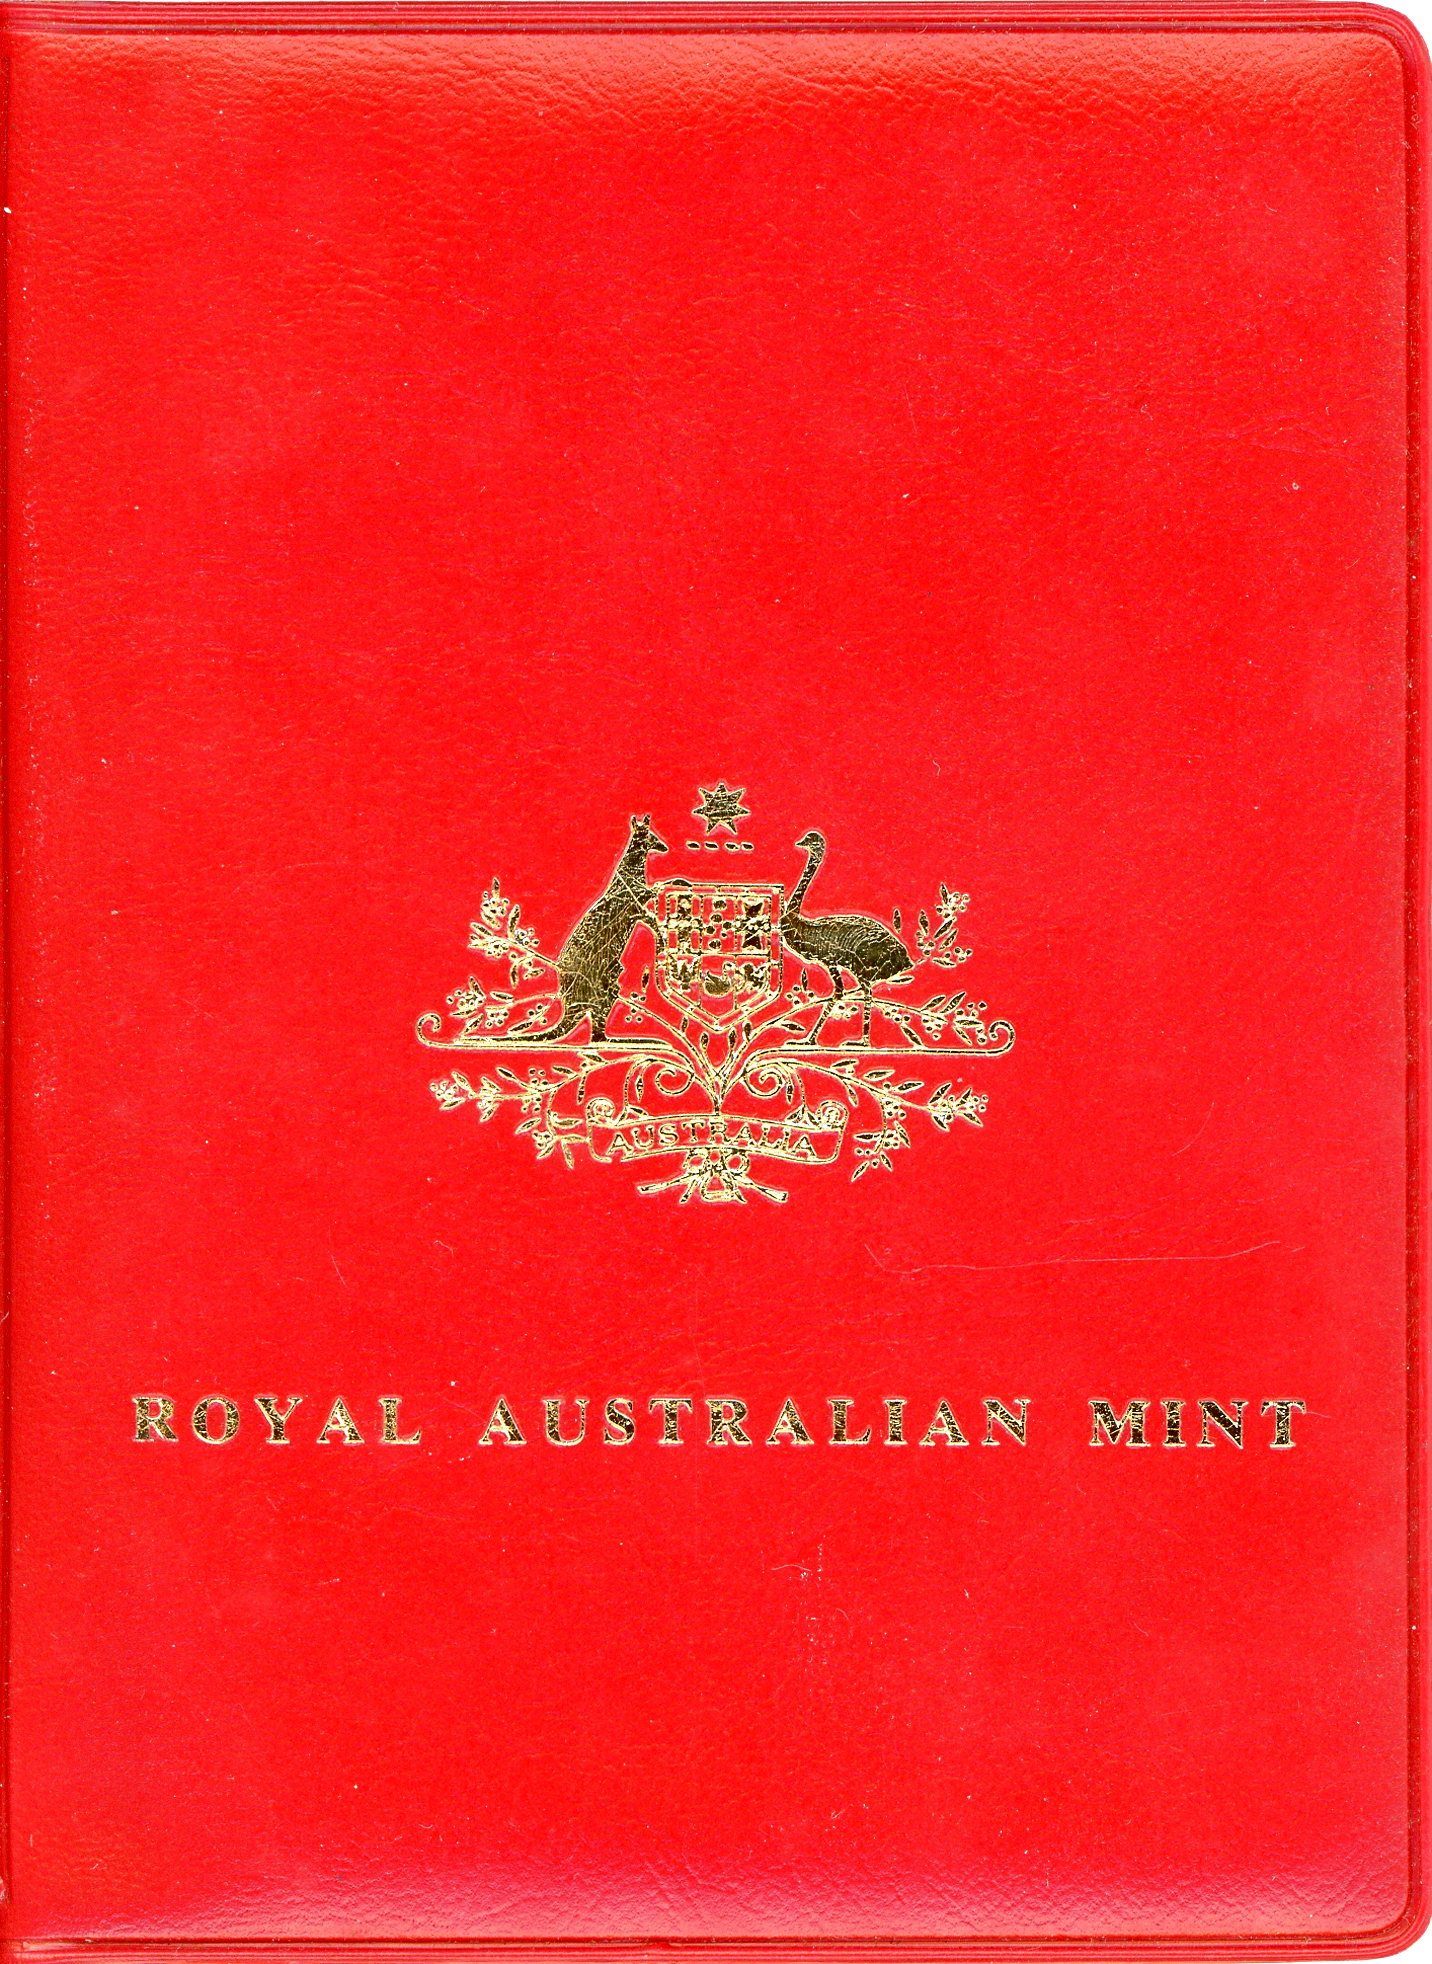 Thumbnail for 1980 Australian Mint In Red Wallet